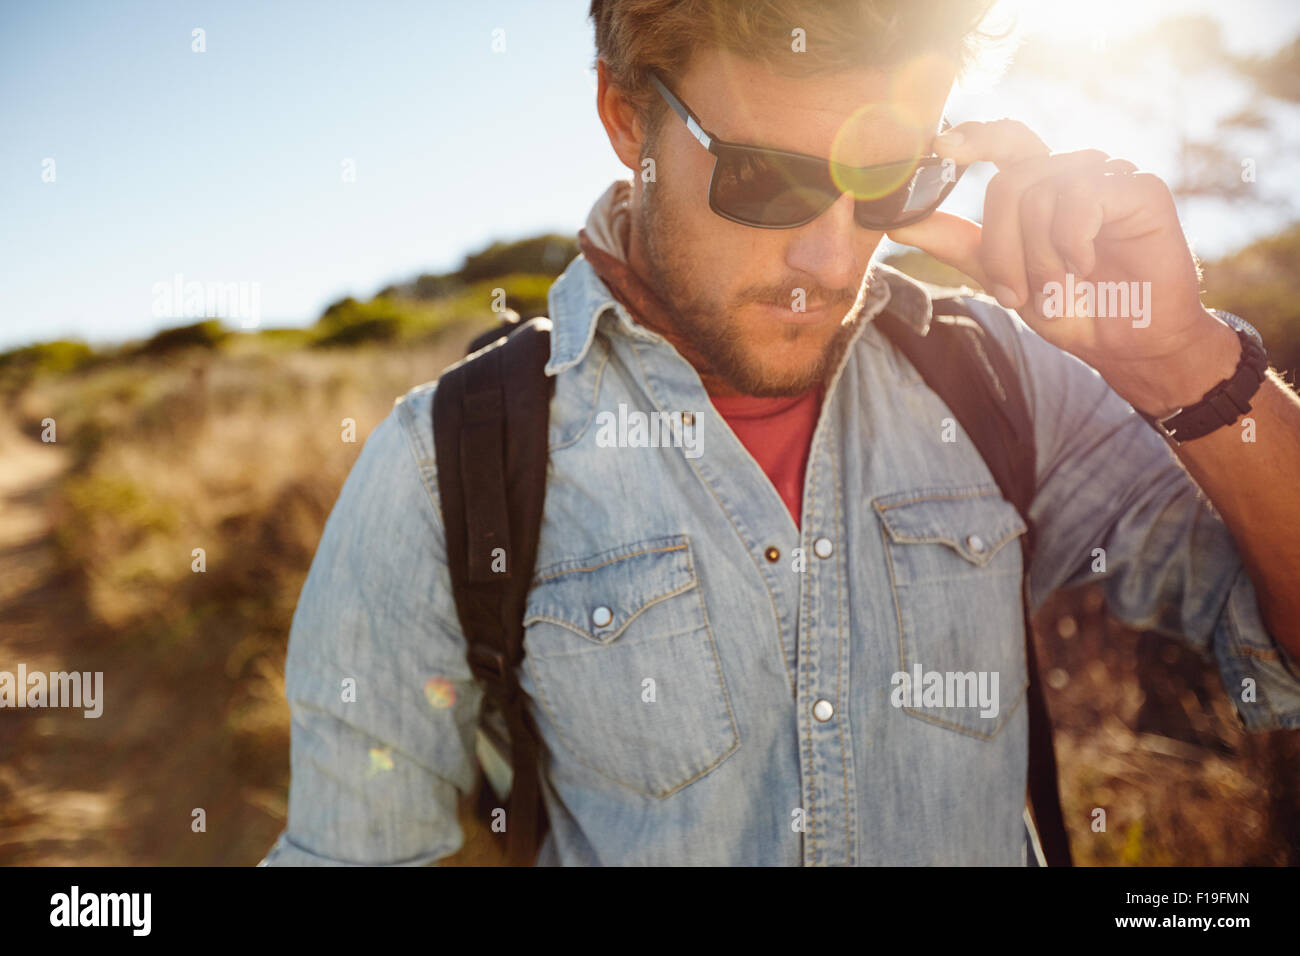 Close up shot of young man on country hike. Caucasian male model hiking wearing sunglasses with sun flare. - Stock Image